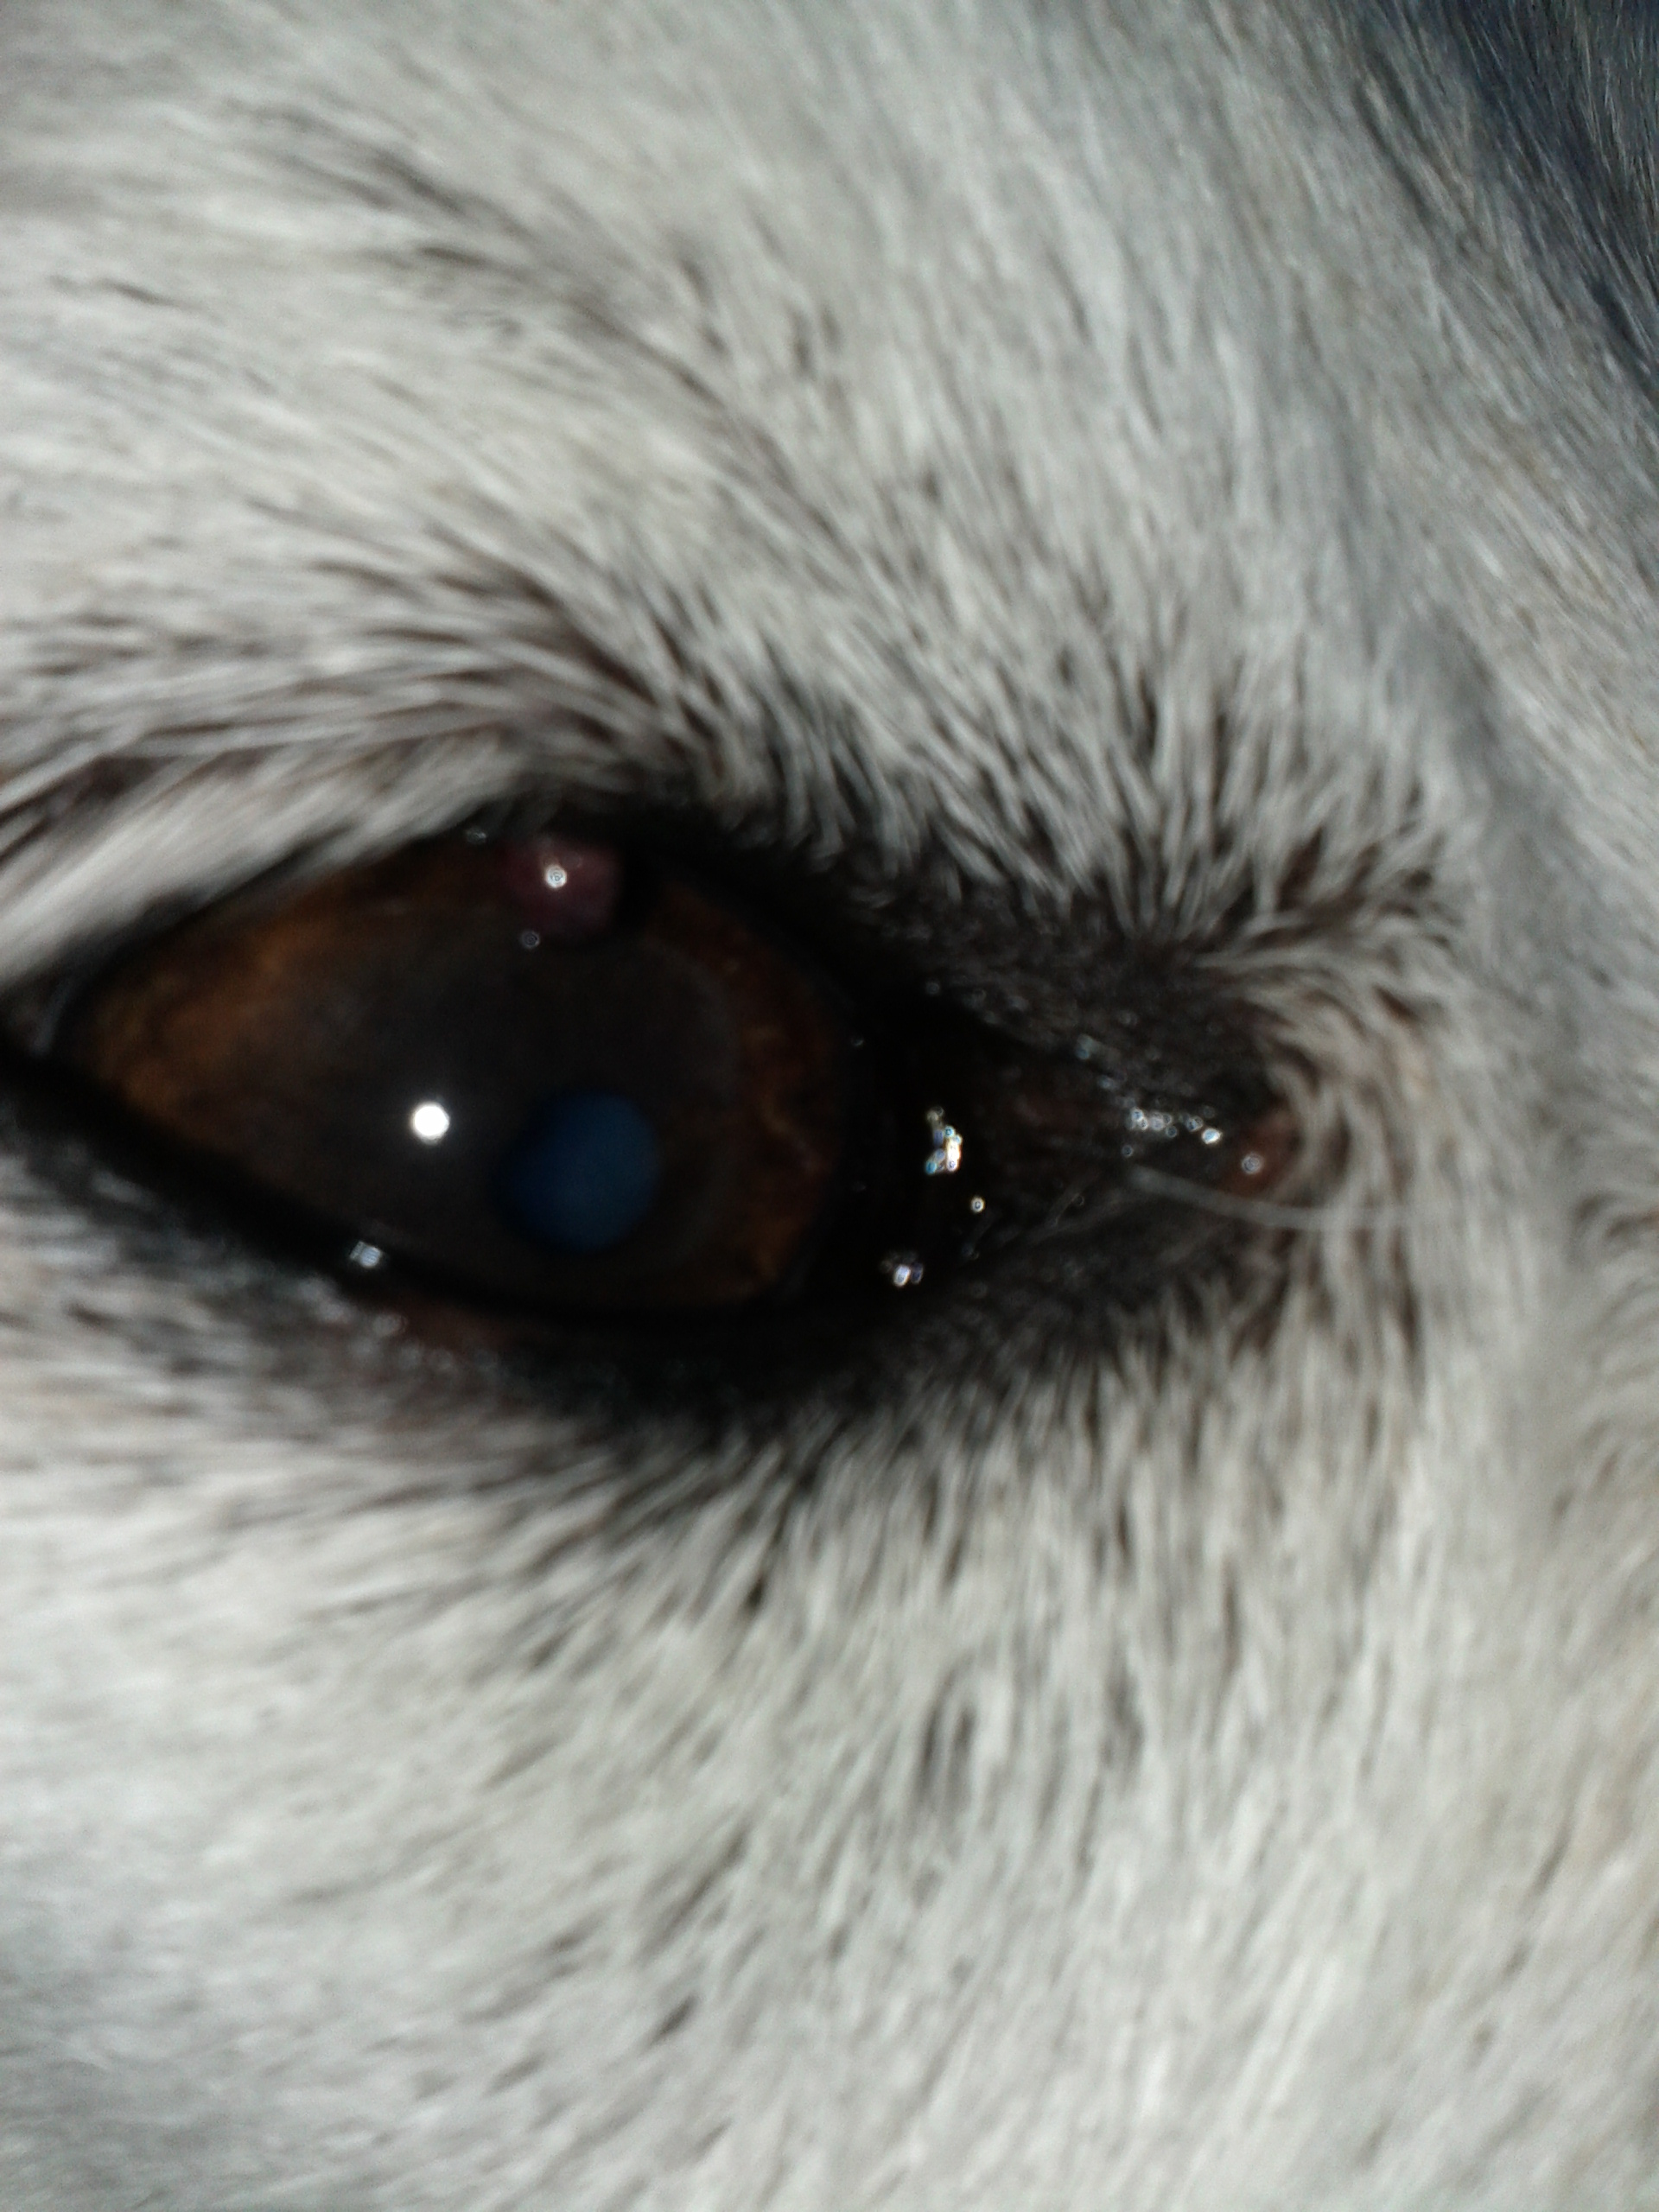 My dog has a stye or cyst in his upper eyelid  What should I do?